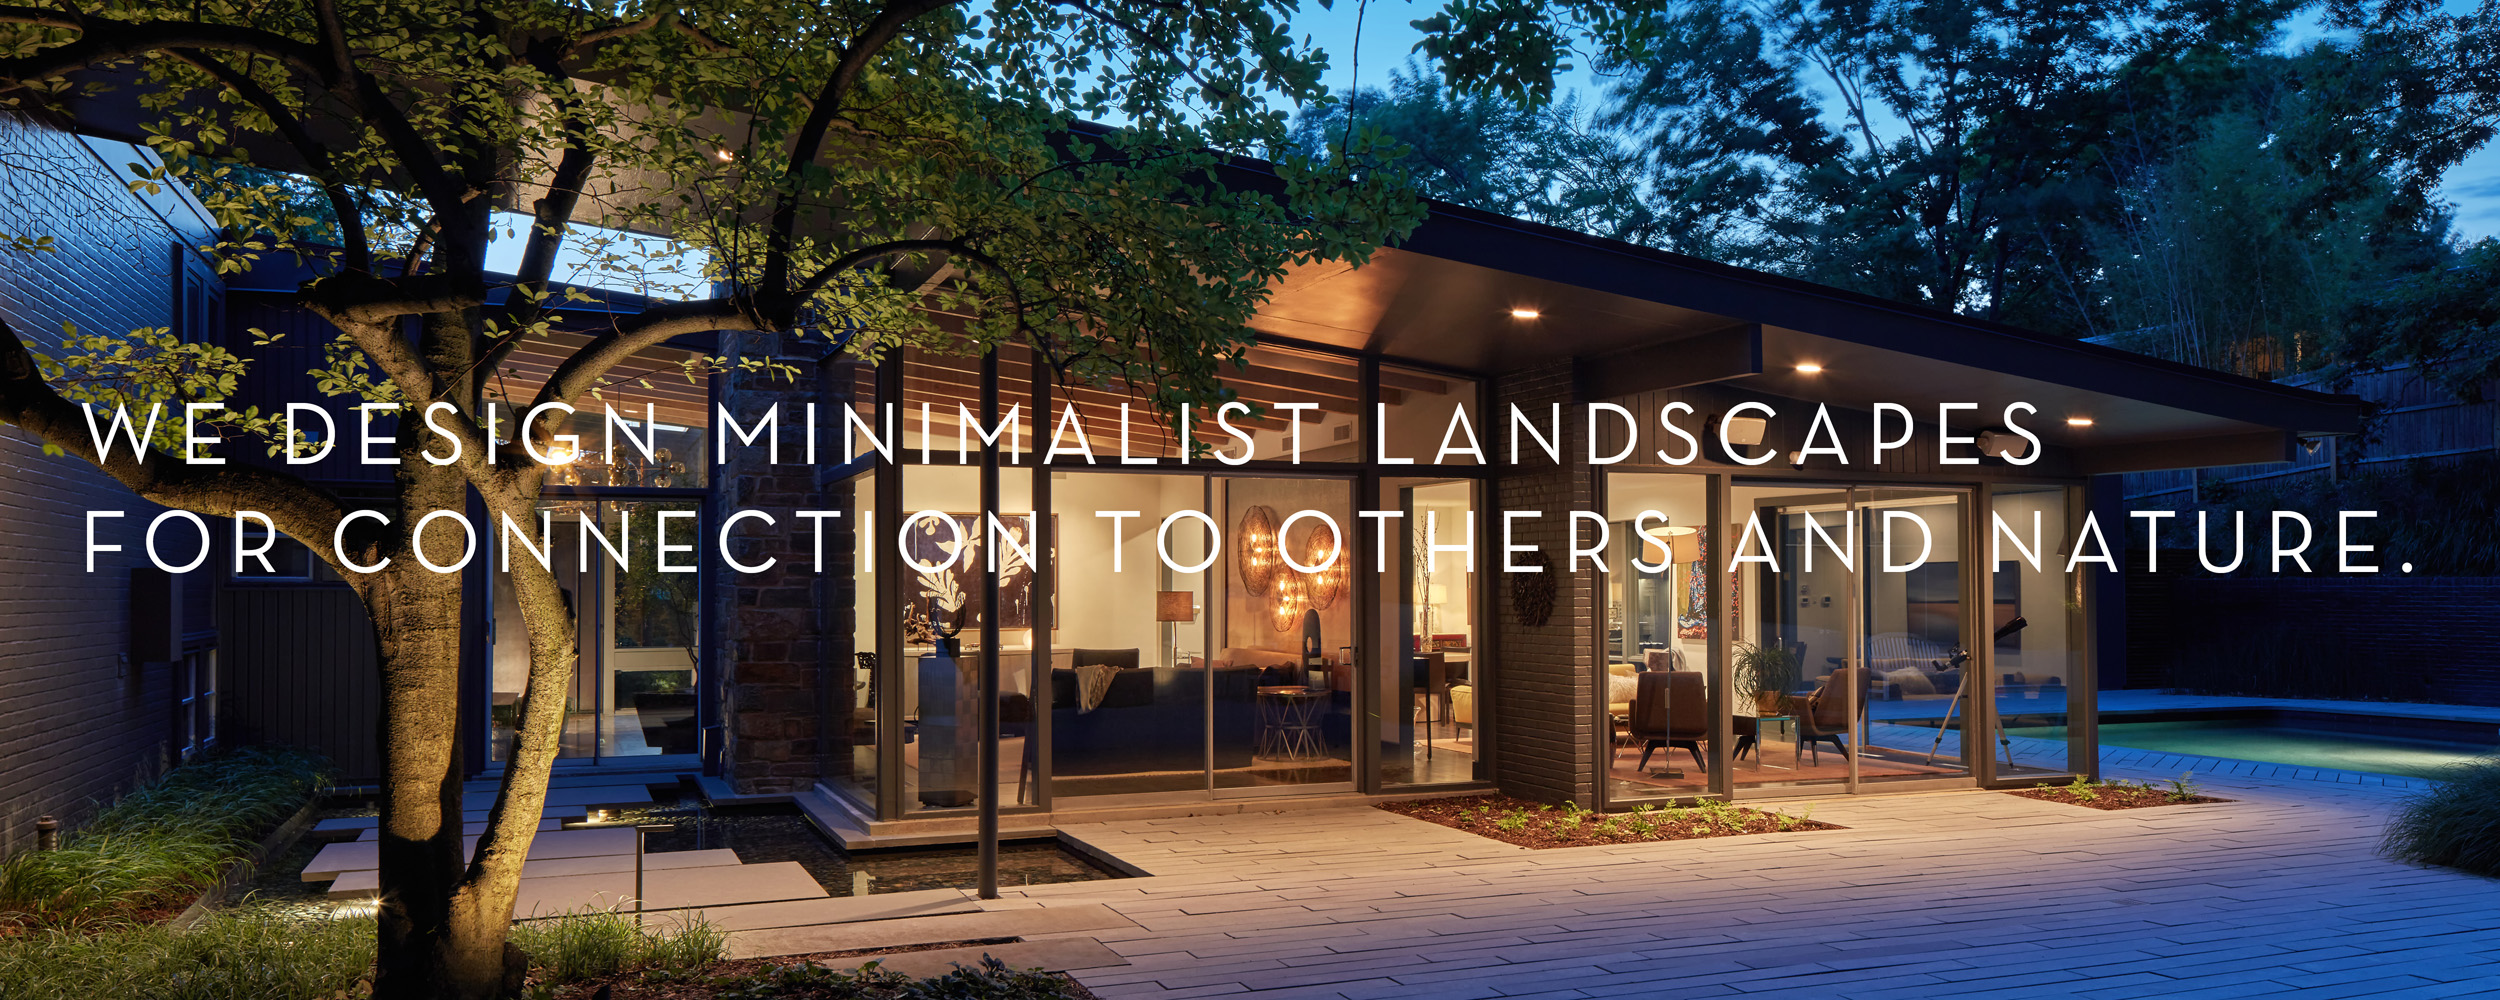 Landscape architecture and design projects by LOCH Collective